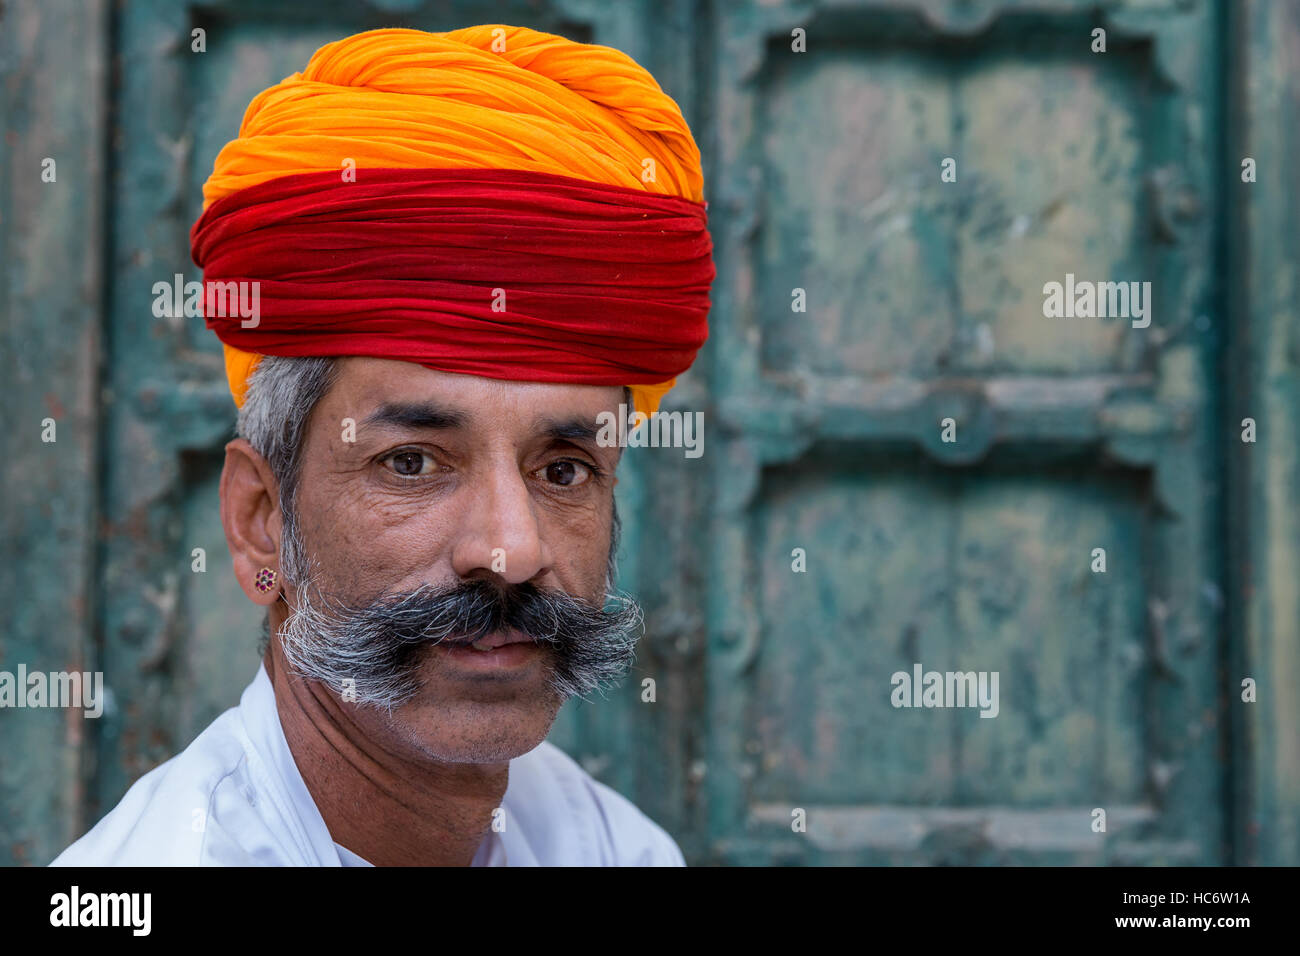 Portrait of Rajasthani dressed in traditional clothes, Jodhpur, Rajasthan, India - Stock Image